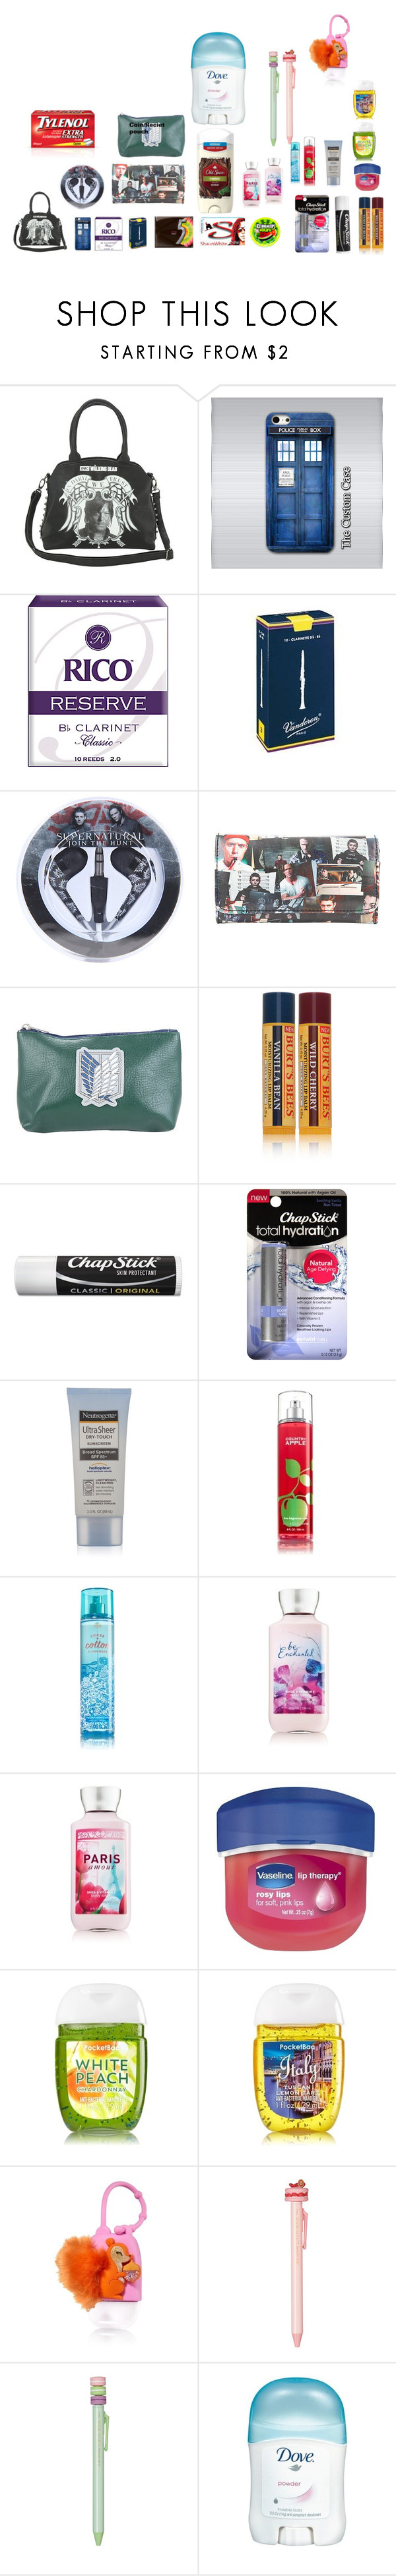 """""""marchingbandstorypt1purse"""" by symphoney on Polyvore featuring beauty, Rock Rebel, Samsung, Reeds Jewelers, Burt's Bees, Chapstick, Neutrogena, Therapy and Ladurée"""